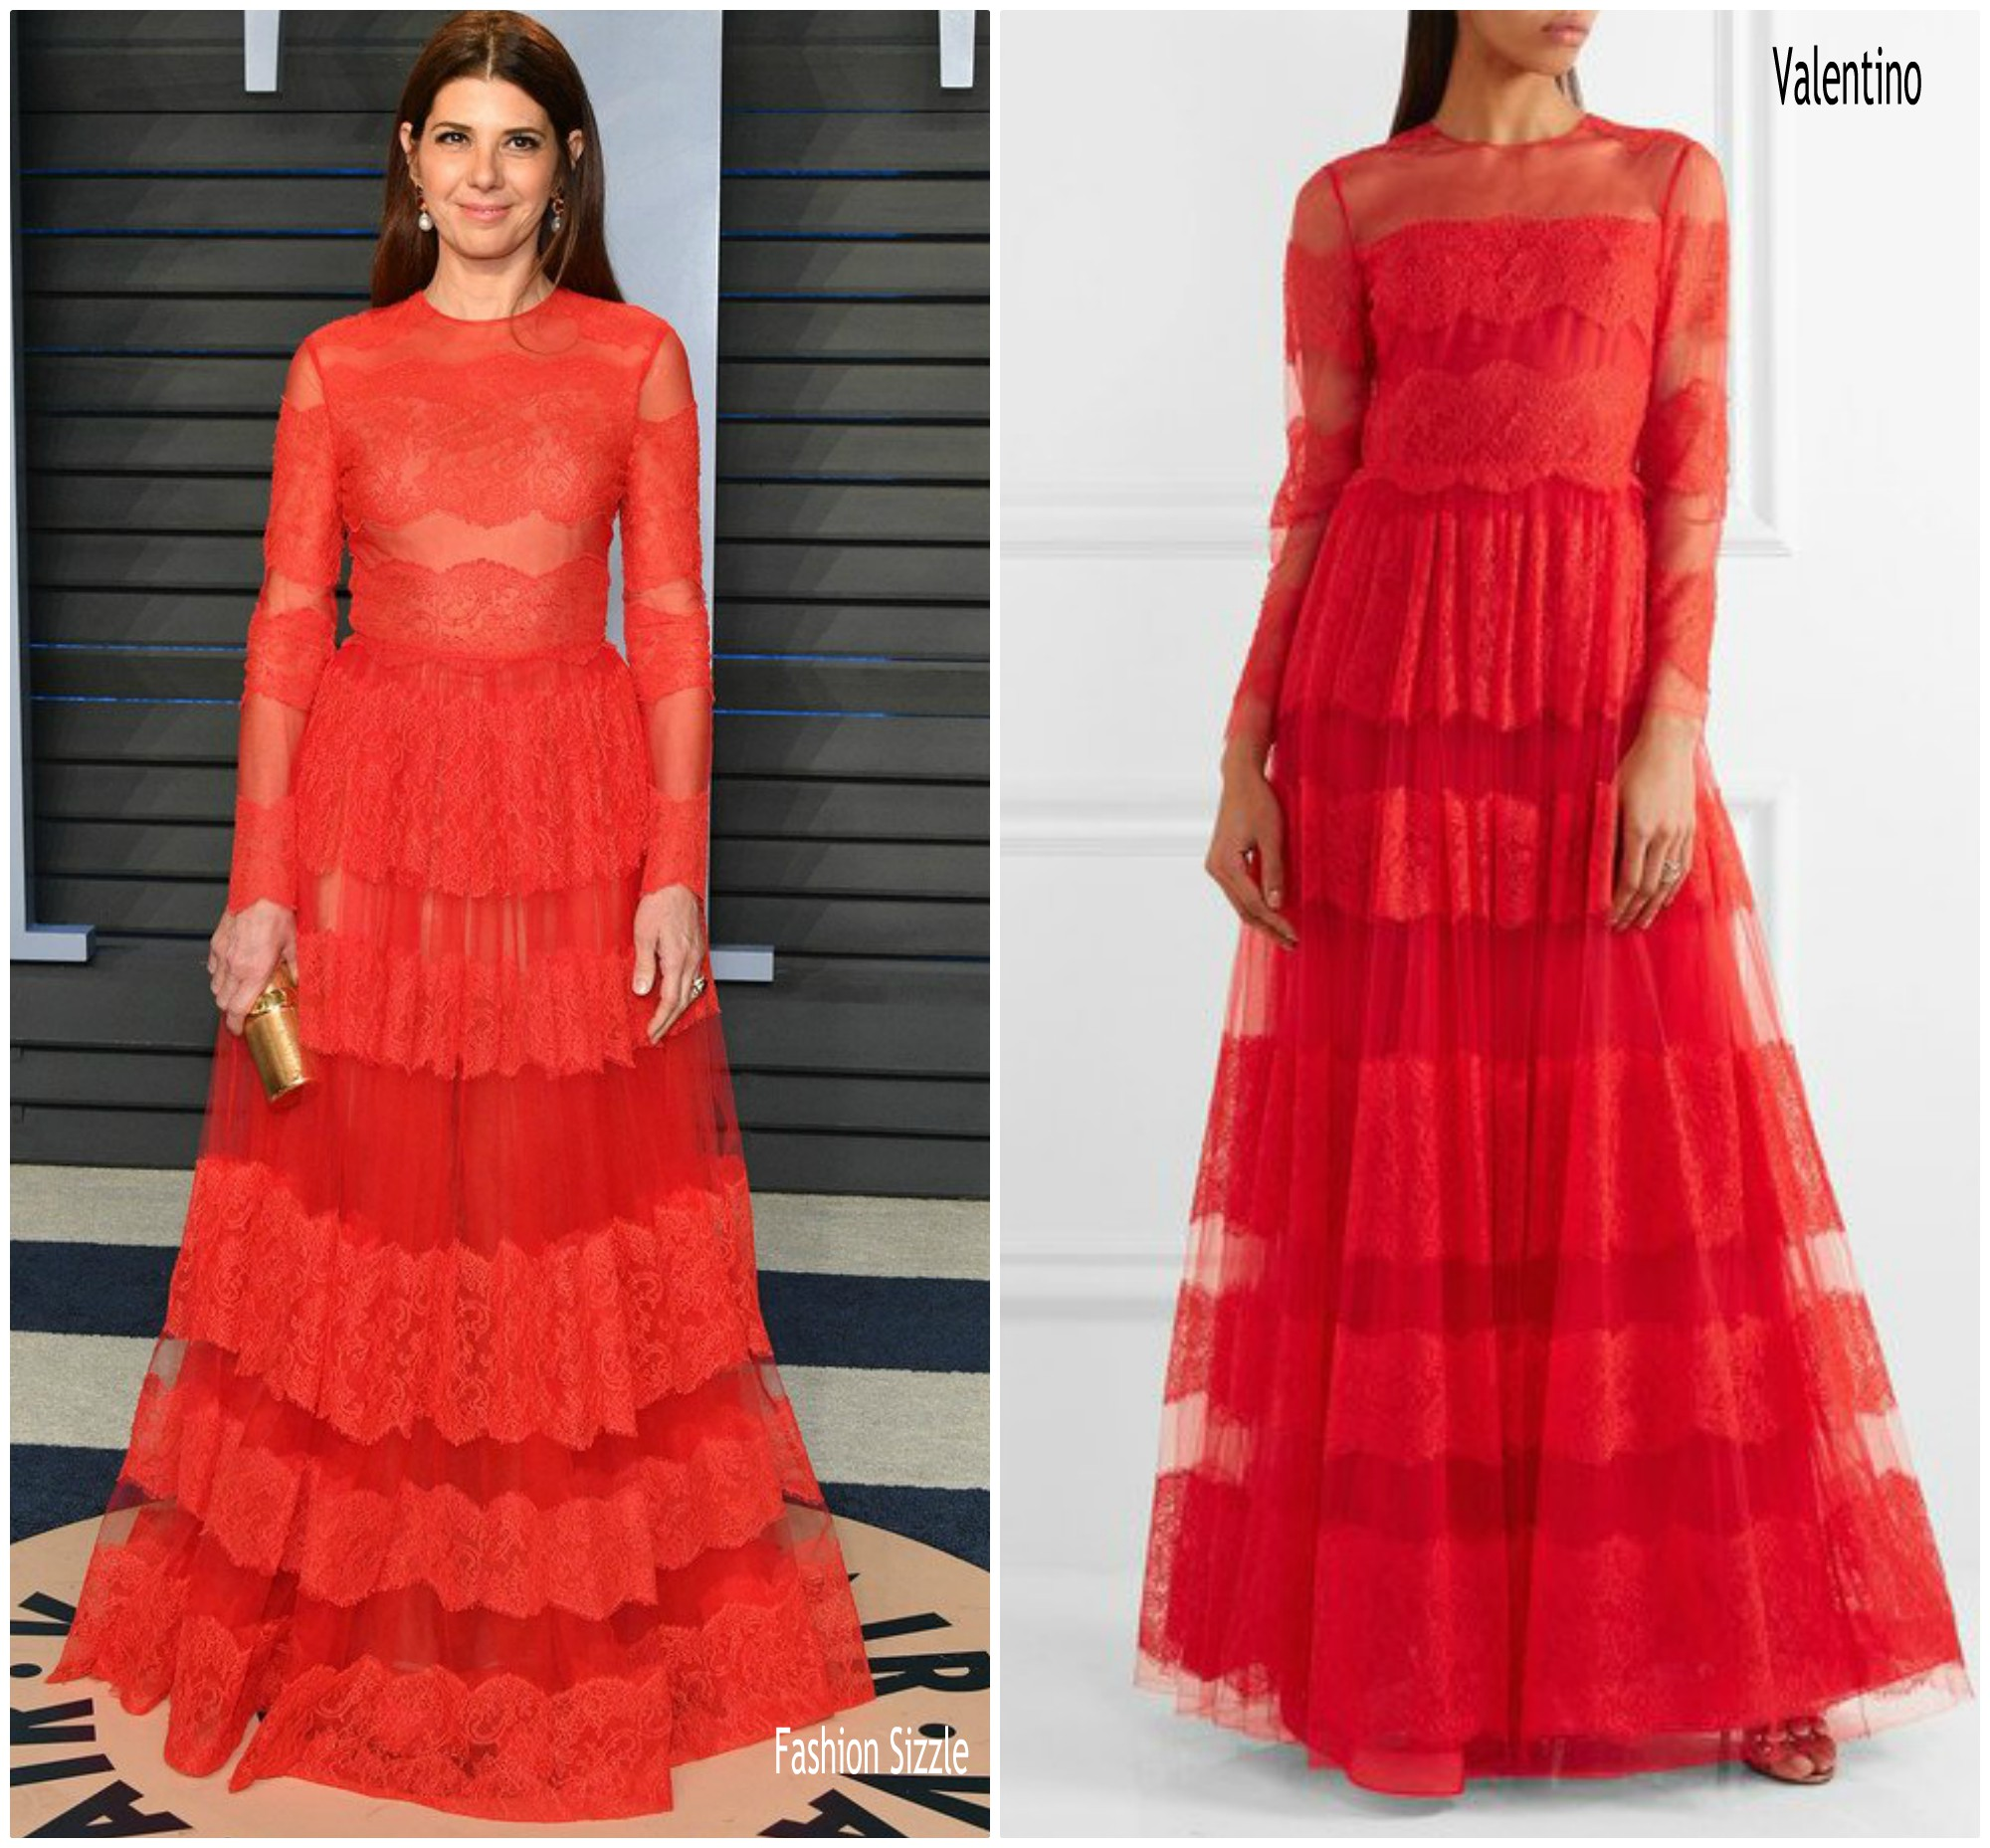 marisa-tomei-in-valentino-2018-vanity-fair-oscar-party